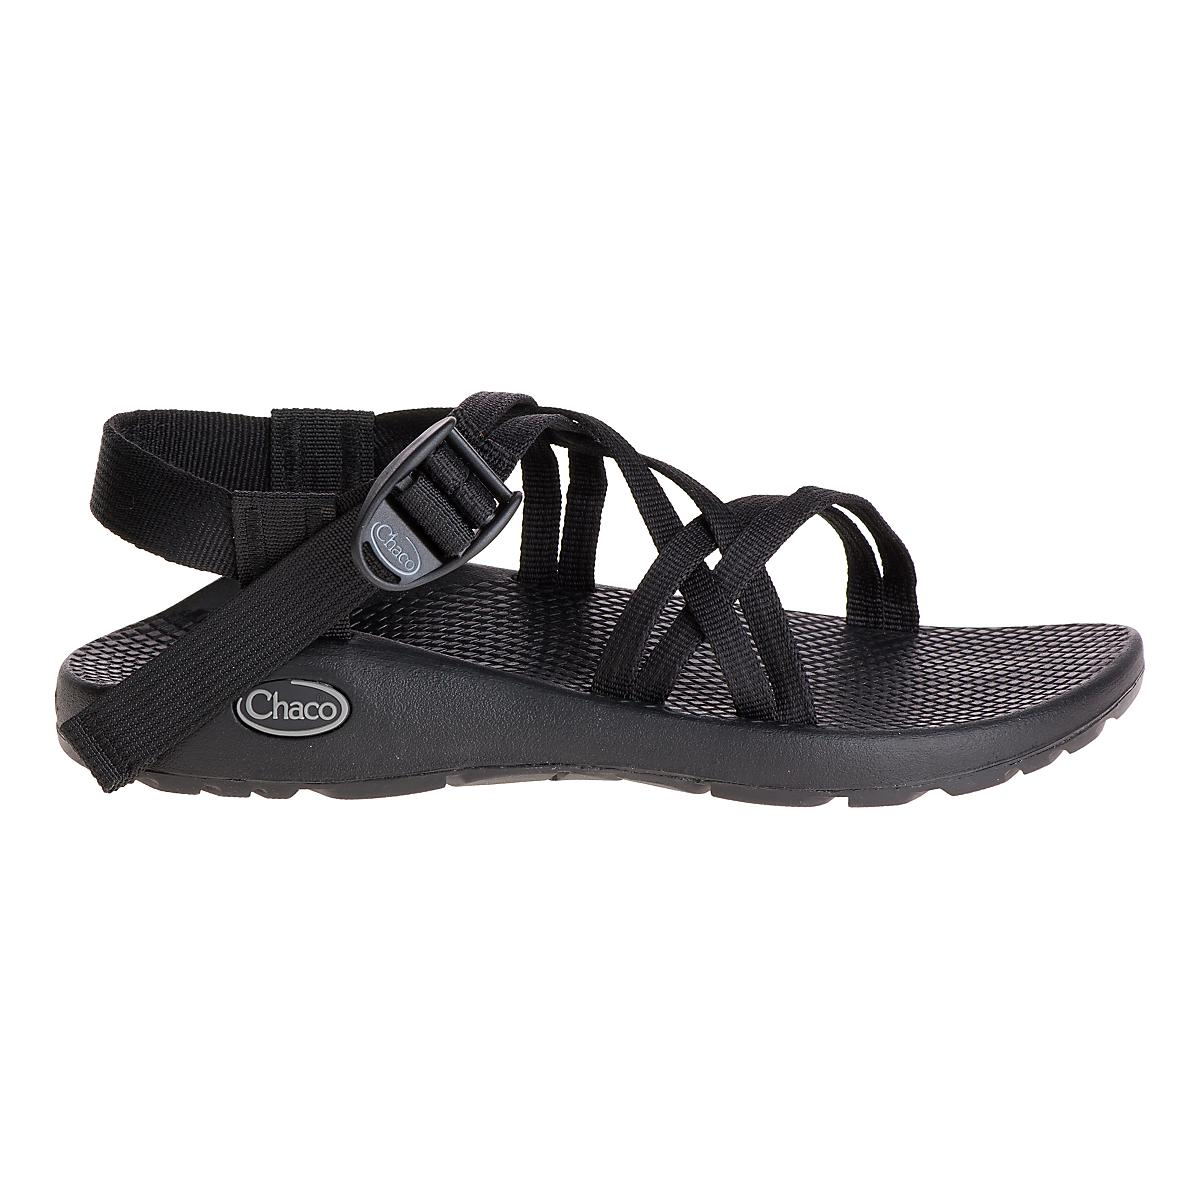 f1552dc5887c Womens Chaco ZX 1 Classic Sandals Shoe at Road Runner Sports